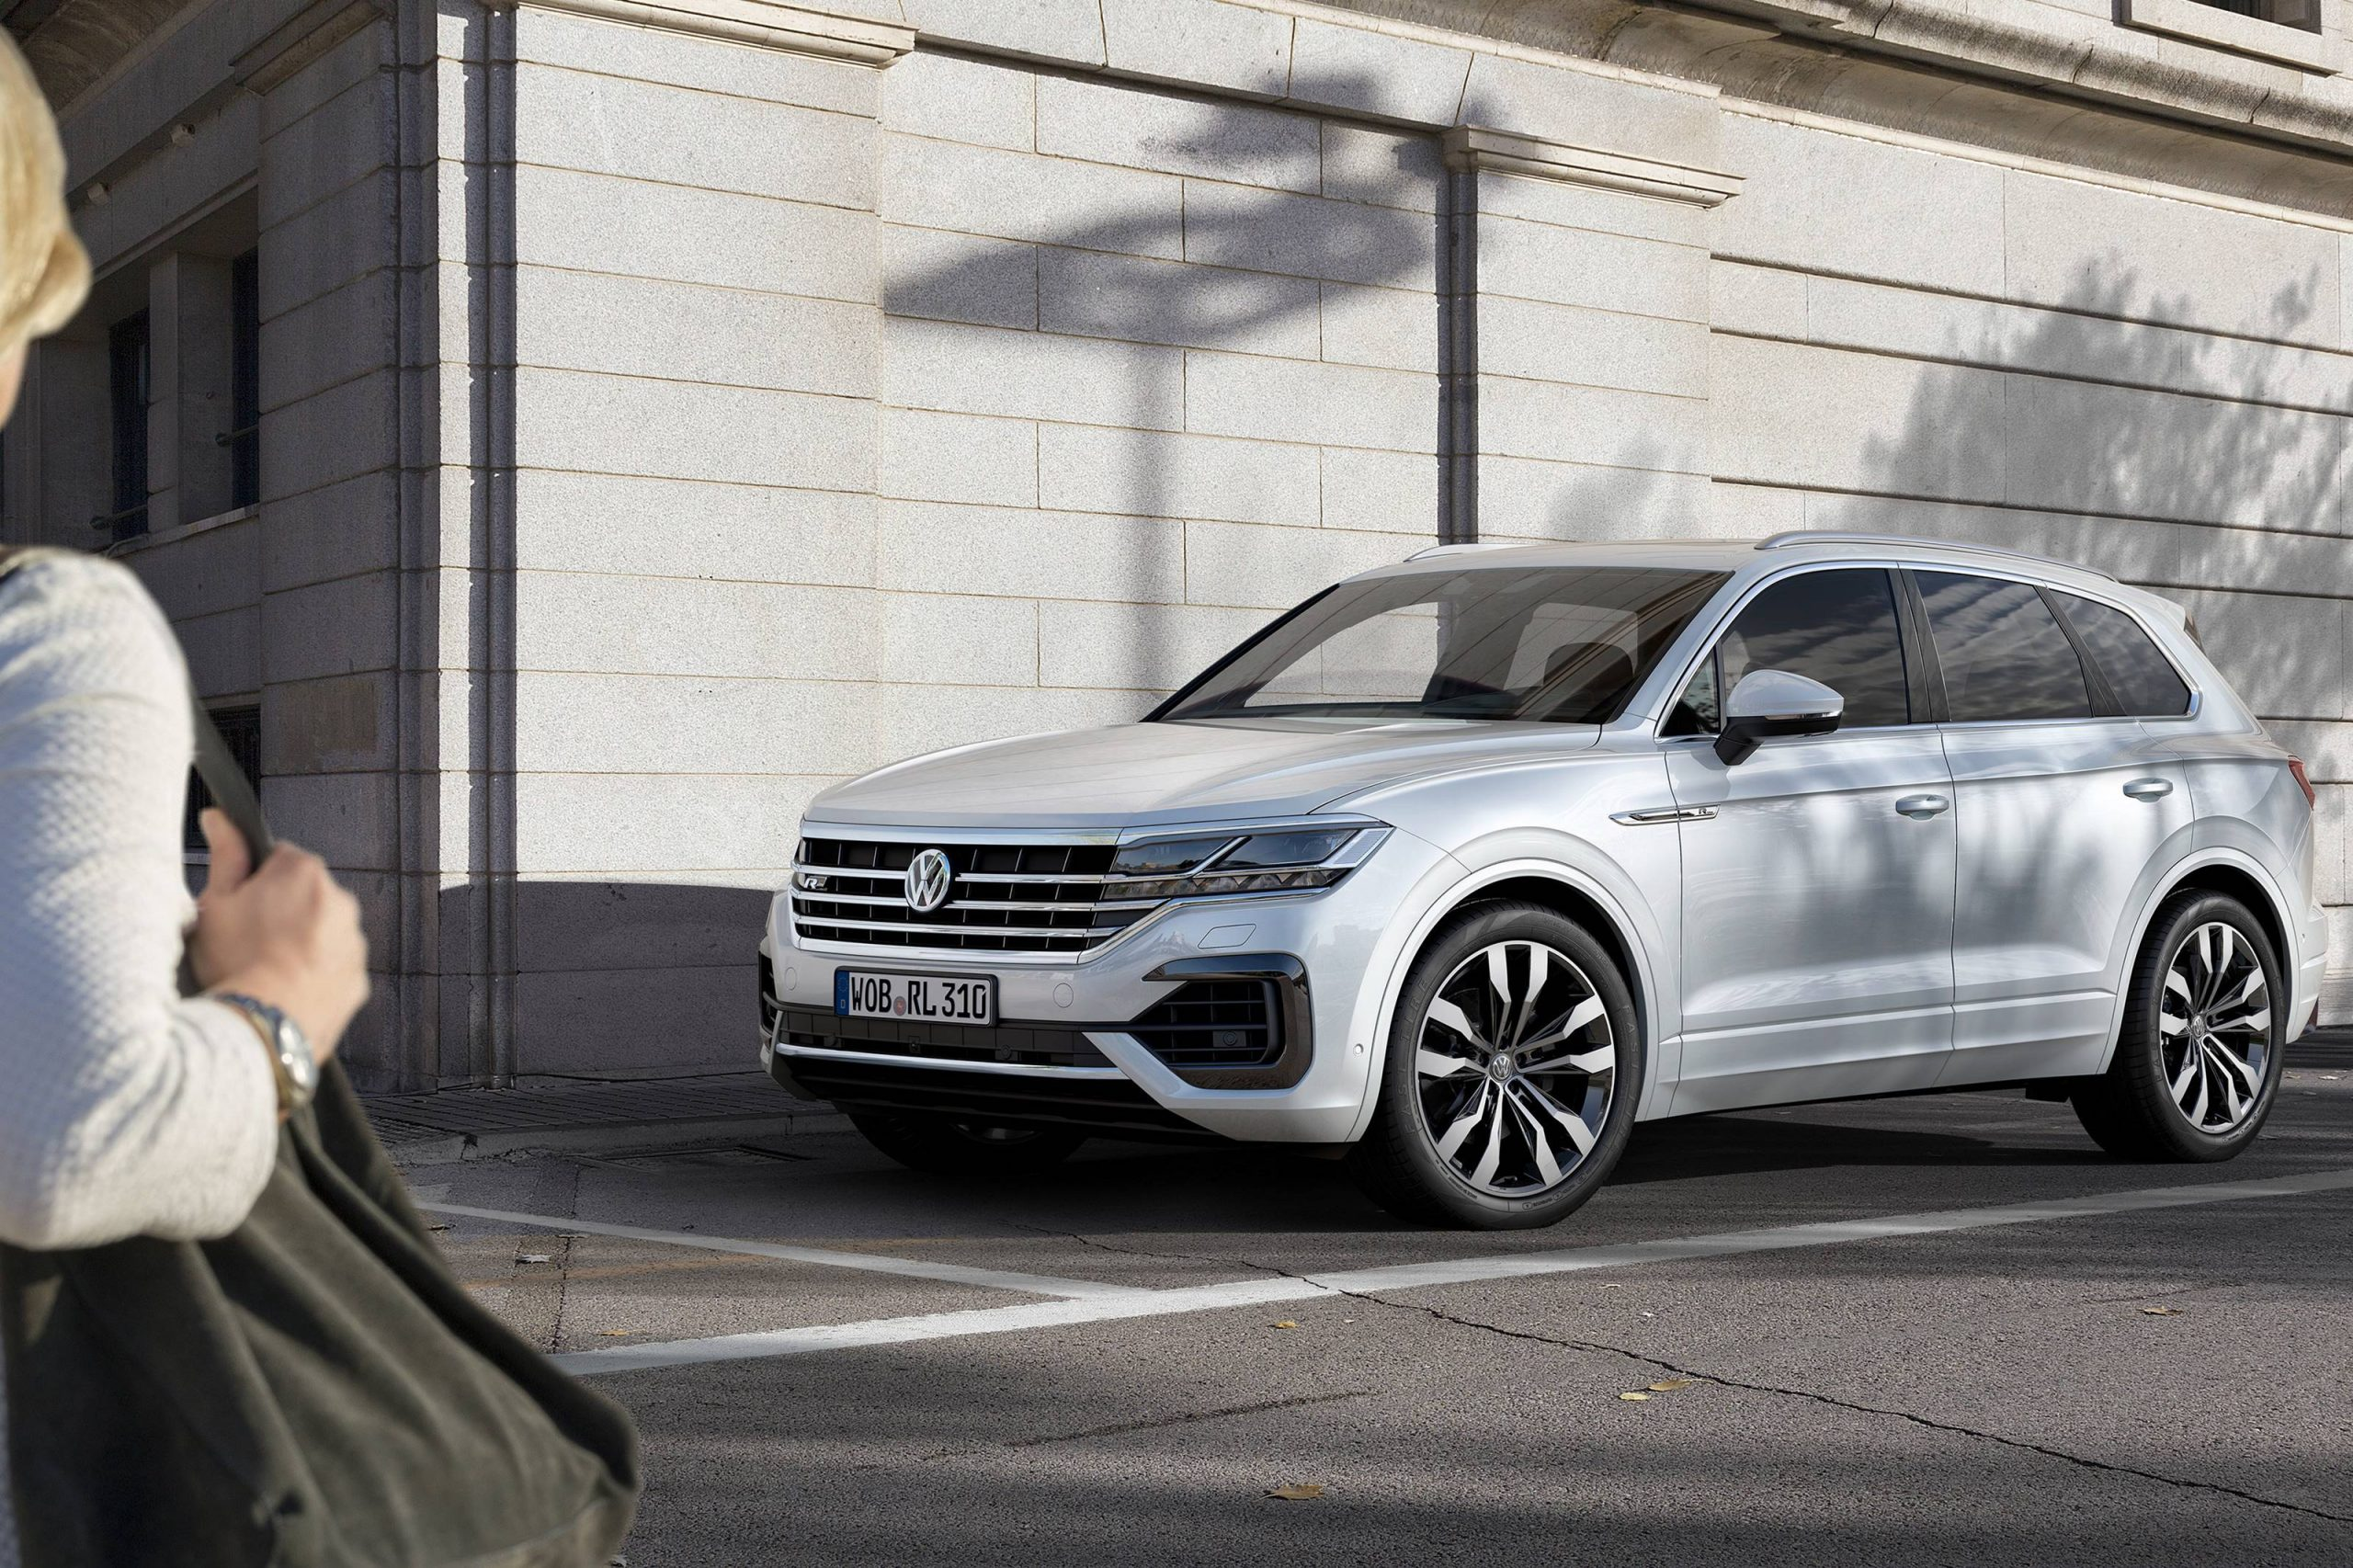 v8 vw touareg arrives with new engines and technology gay car boys v8 vw touareg arrives with new engines